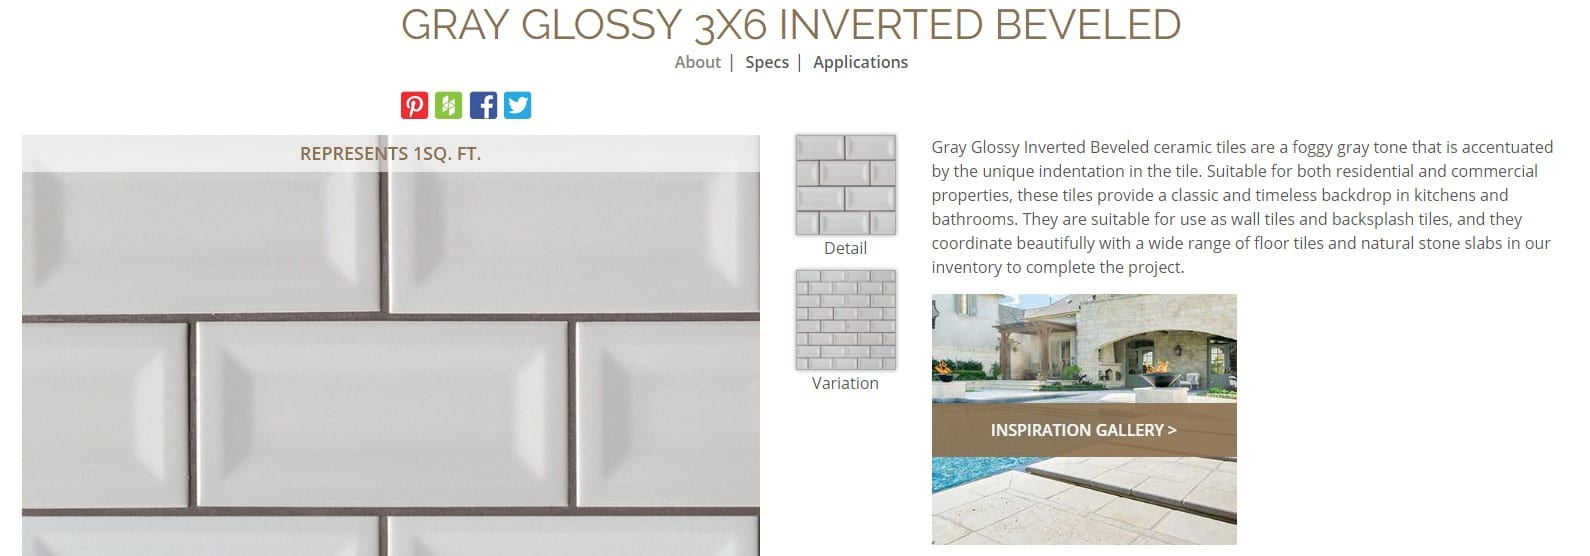 .https://www.msisurfaces.com/domino/gray-glossy-3x6-inverted-beveled/